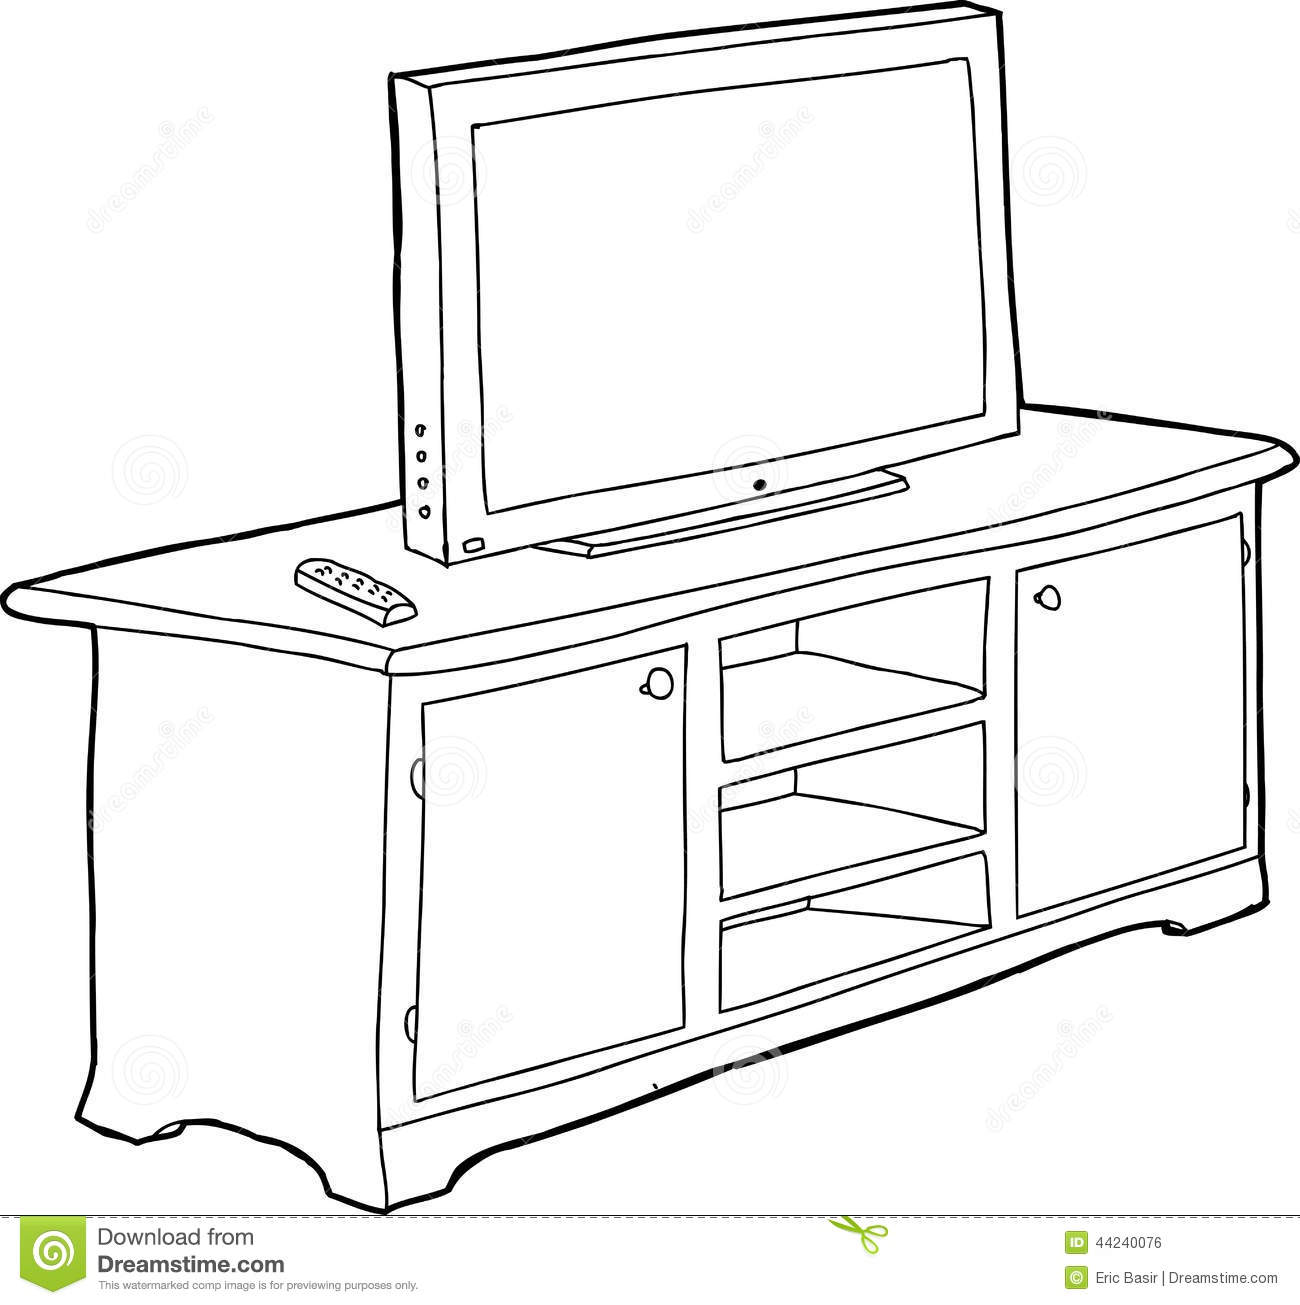 Tv Schrank Englisch Outlined Cabinet And Tv Stock Vector - Image: 44240076